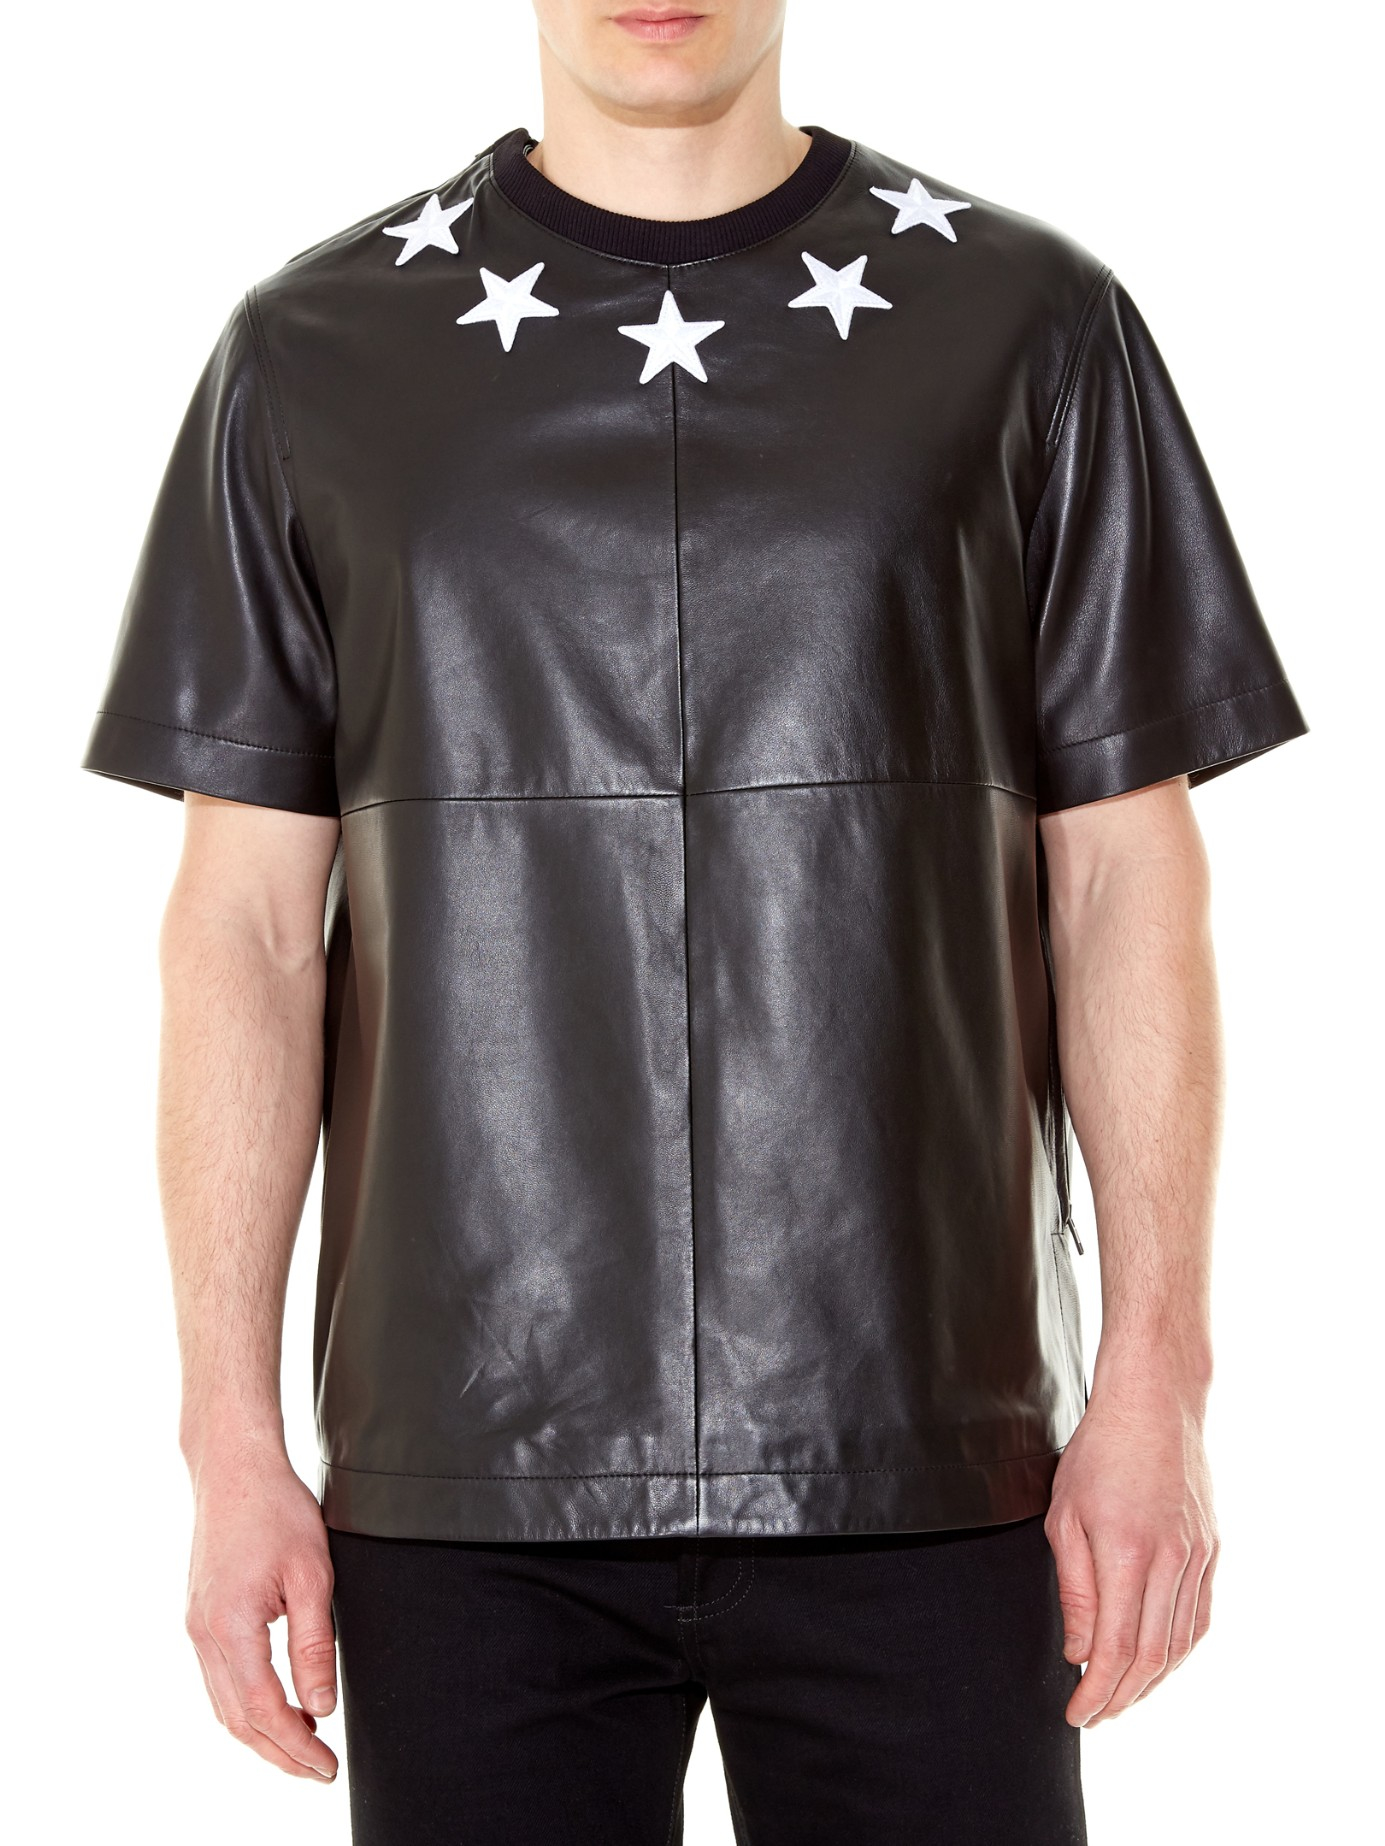 Givenchy star embroidered leather t shirt in black for men for Givenchy 5 star shirt